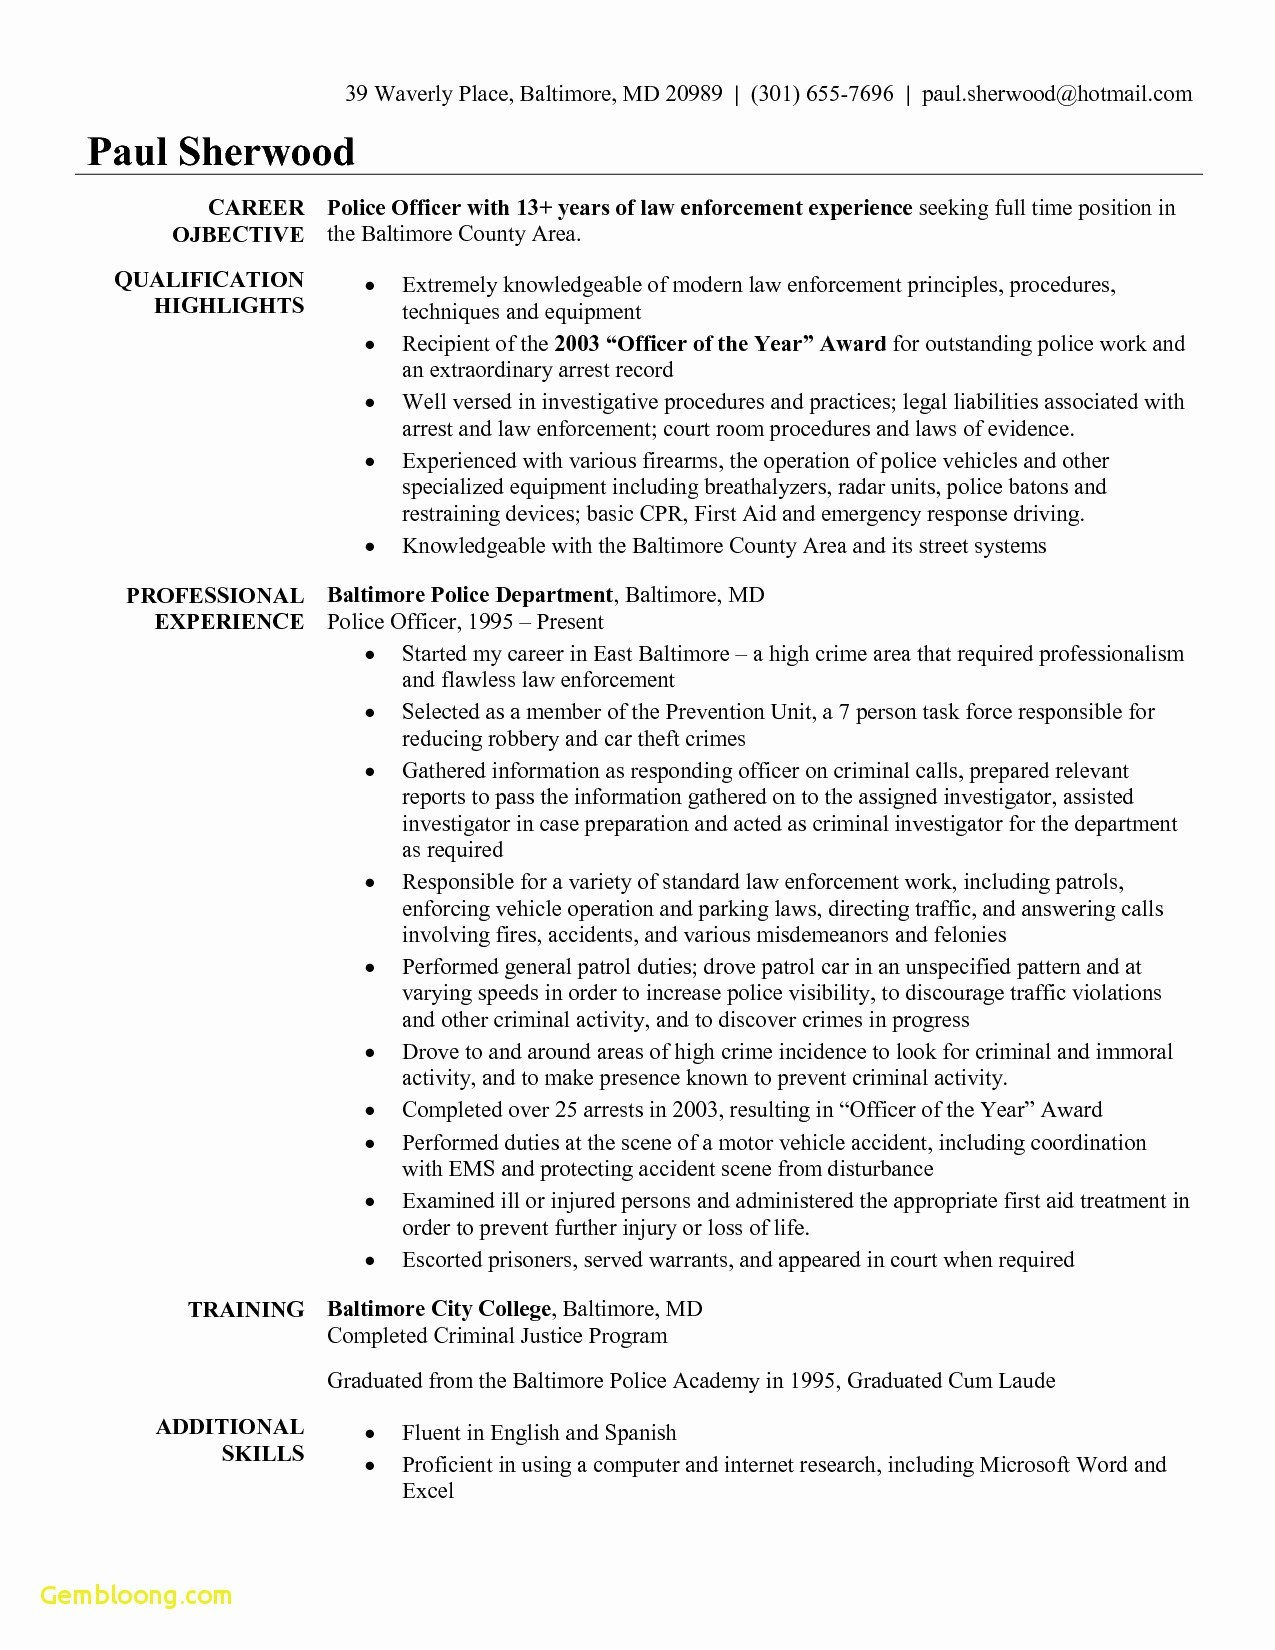 12 law school application resume template examples